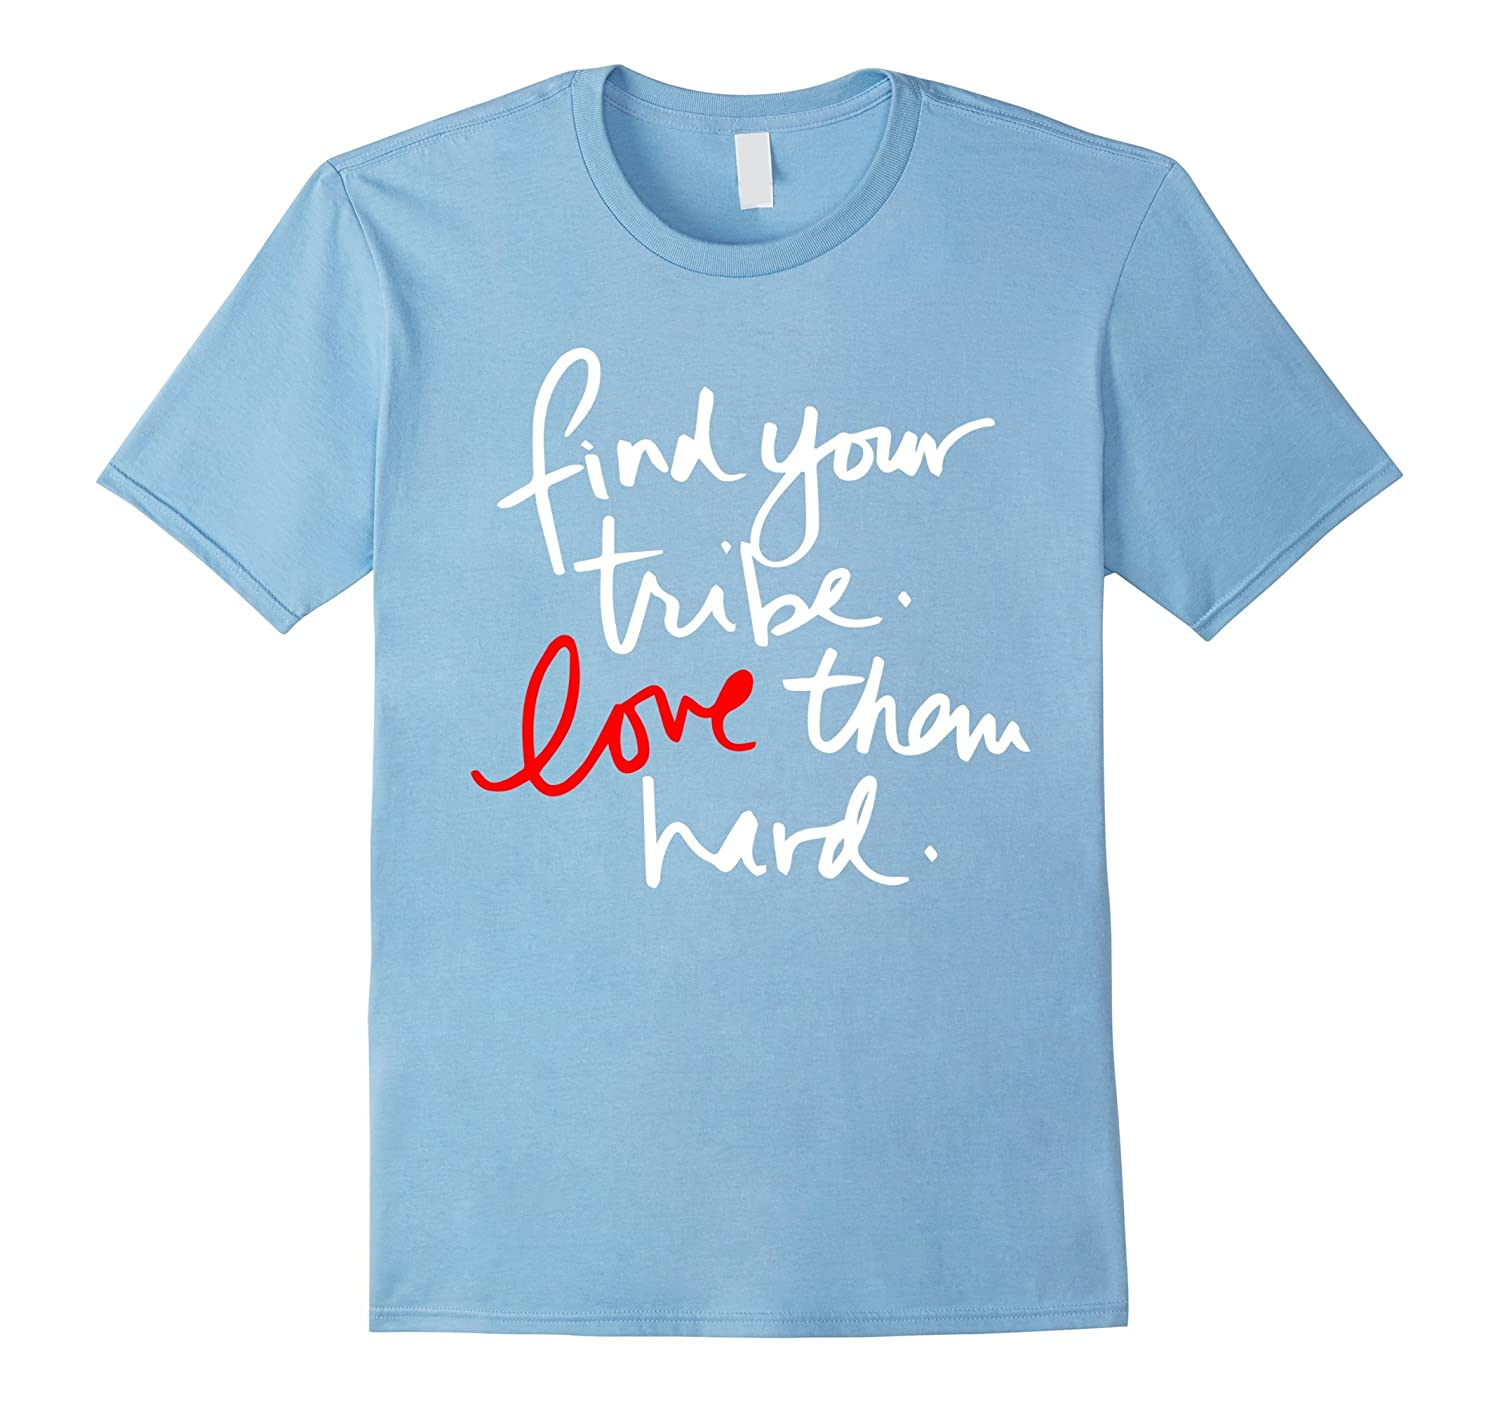 Find your tribe love them hard tshirt great gift for all-ANZ